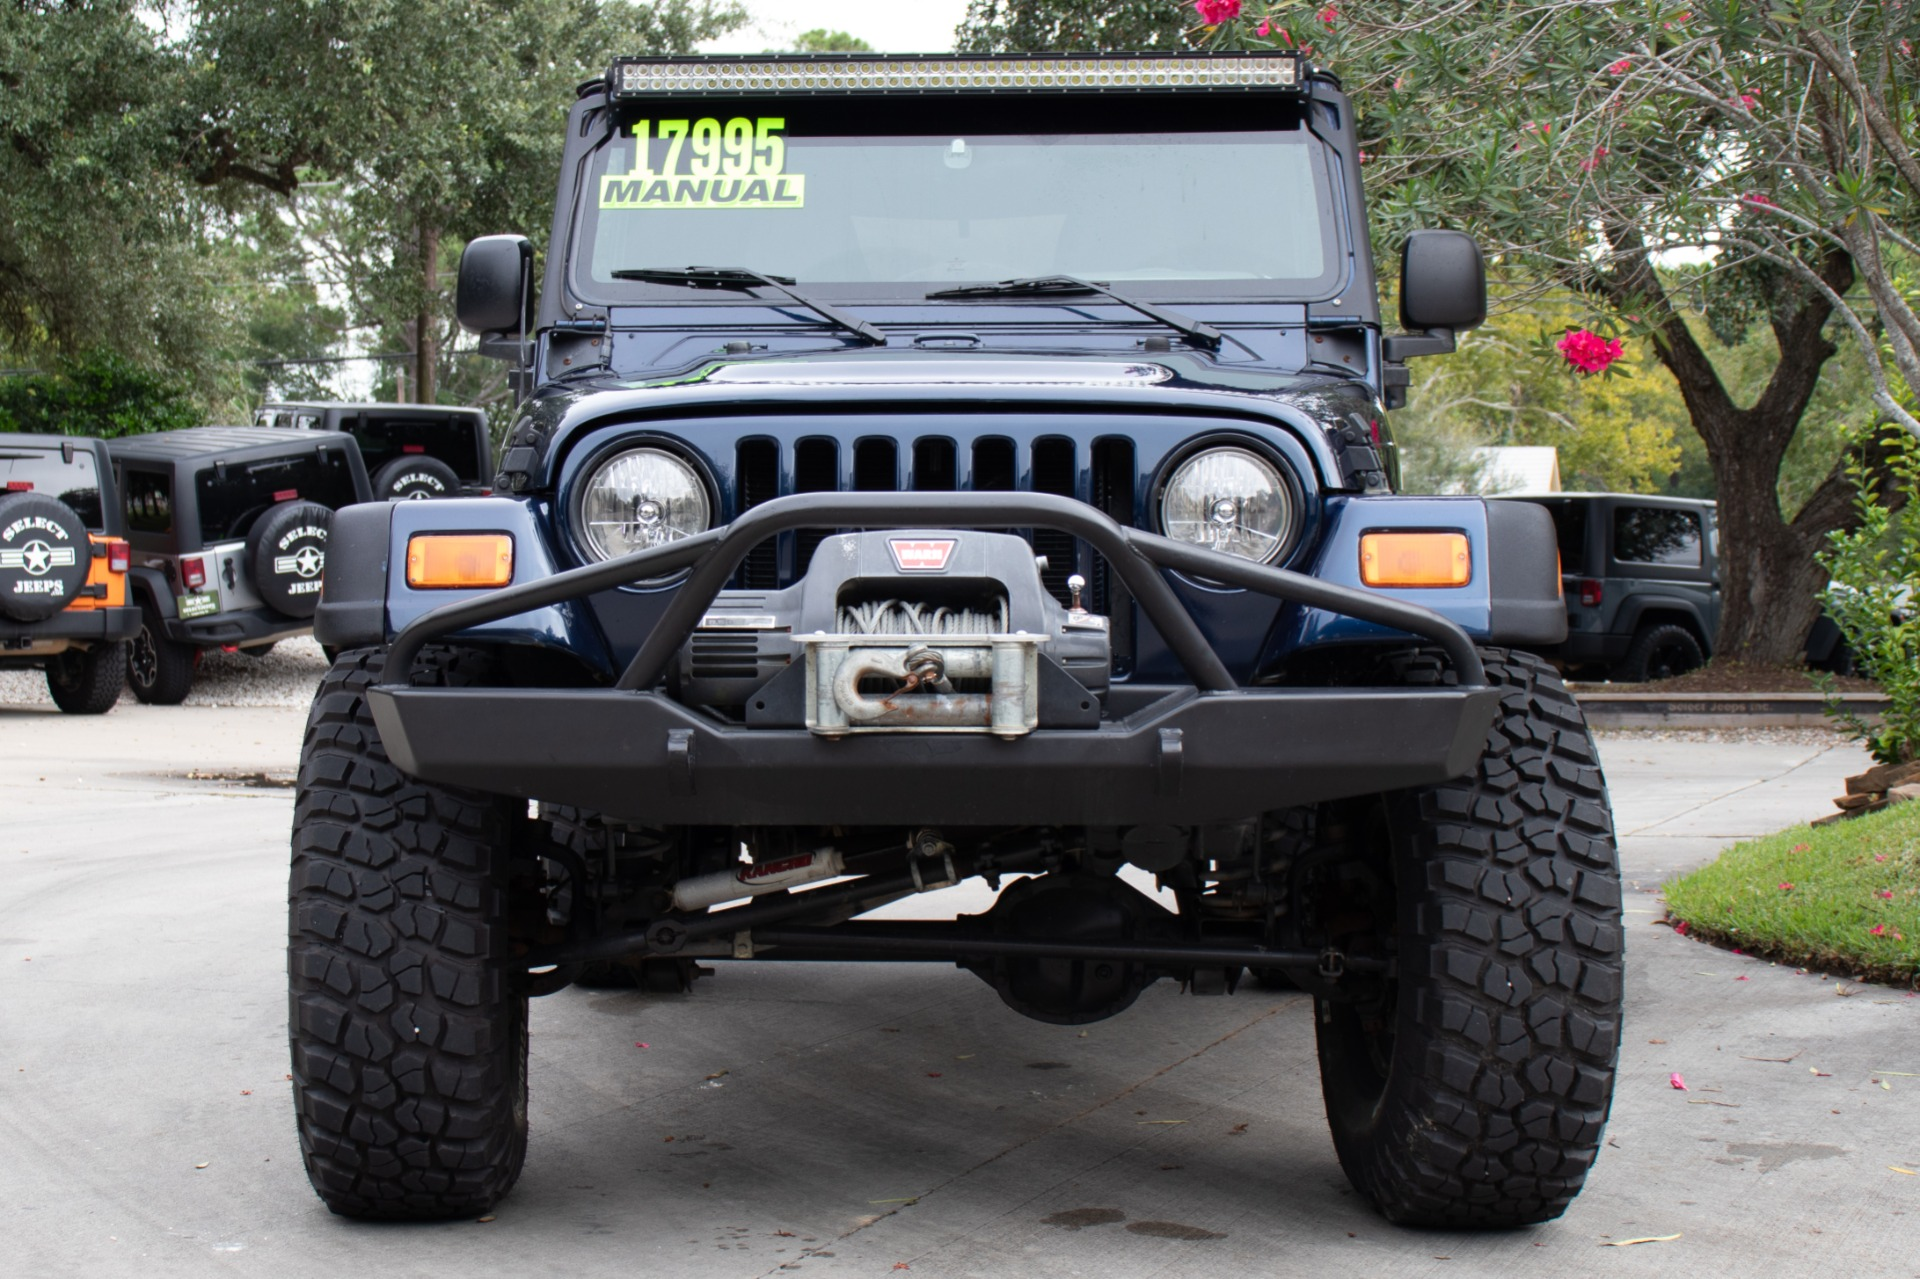 Used-2005-Jeep-Wrangler-Unlimited-2dr-Unlimited